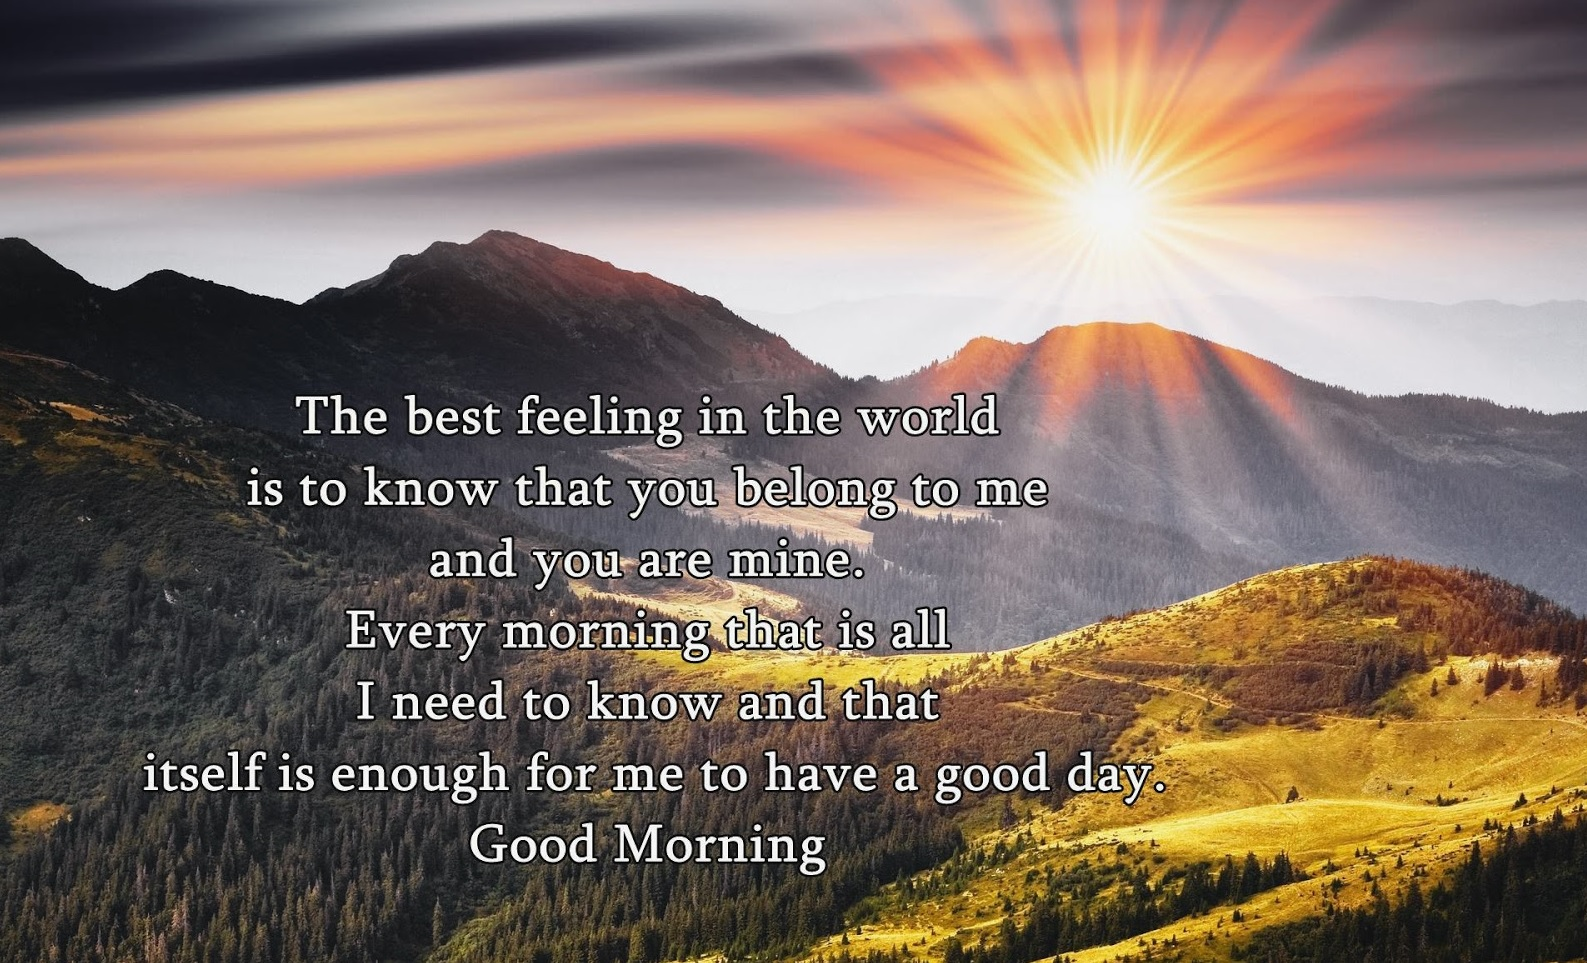 Love Quote For Him And Her Early Morning Sunshine: Good Morning Quotes For Her